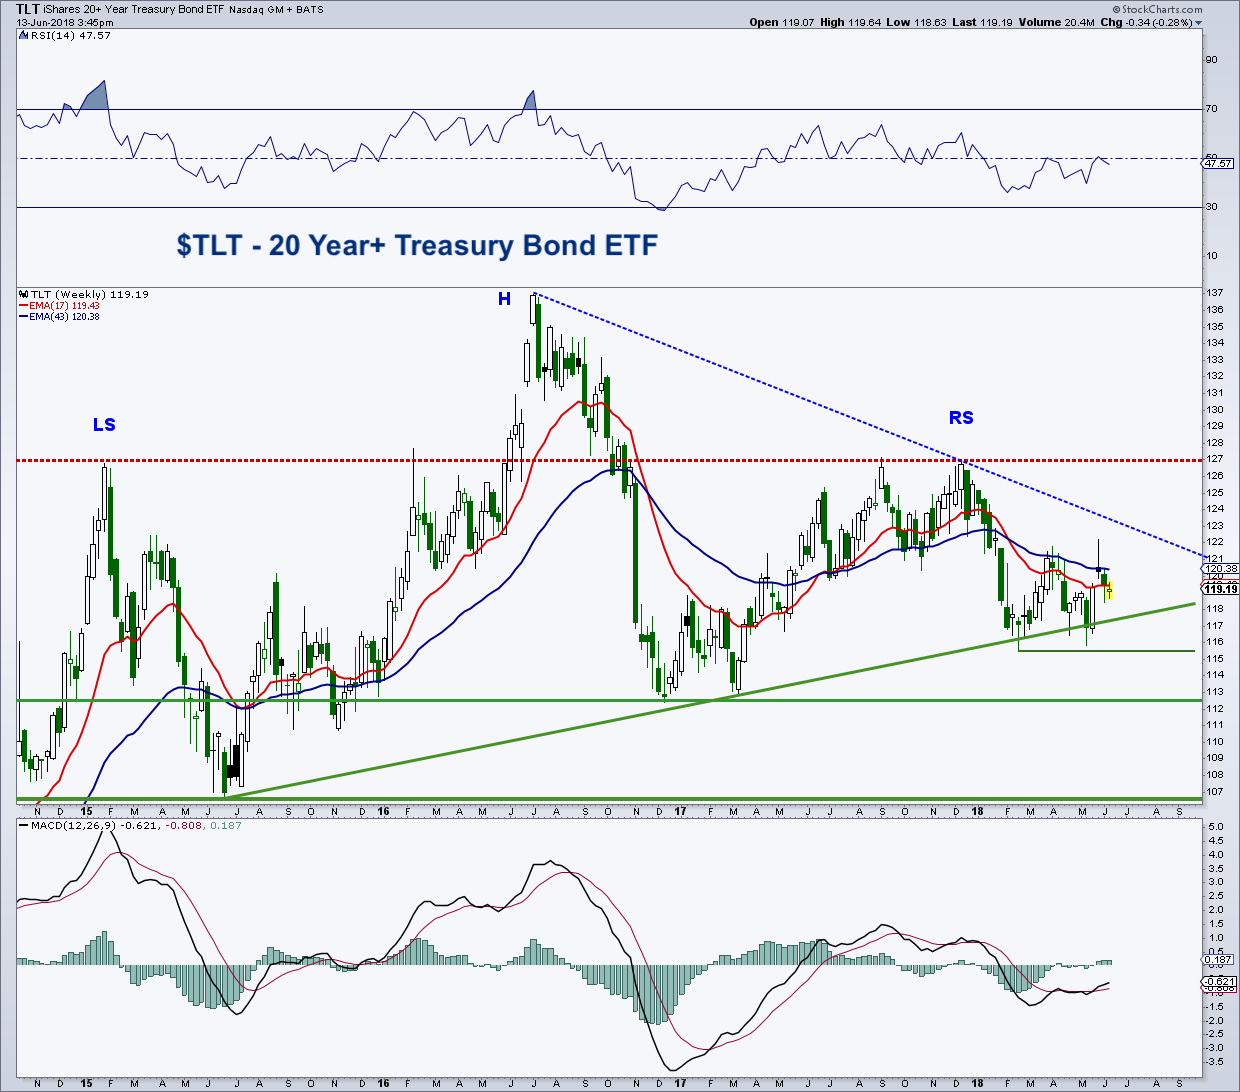 tlt treasury bond etf bearish triangle pattern trading_13 june 2018